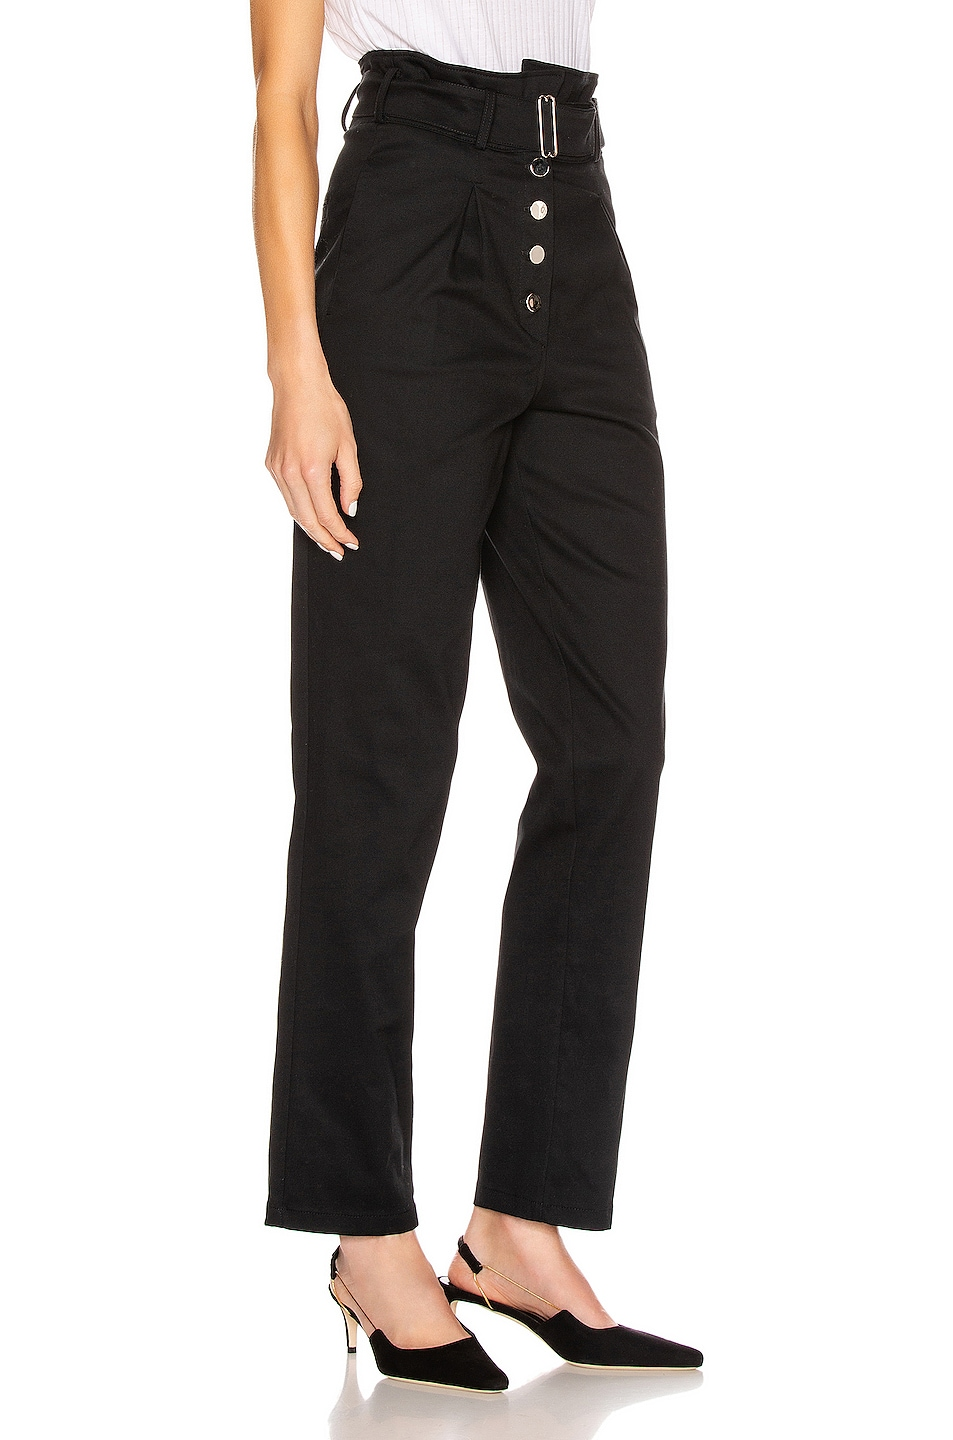 Image 3 of The Range Structured Twill Belted Paperbag Pants in Black